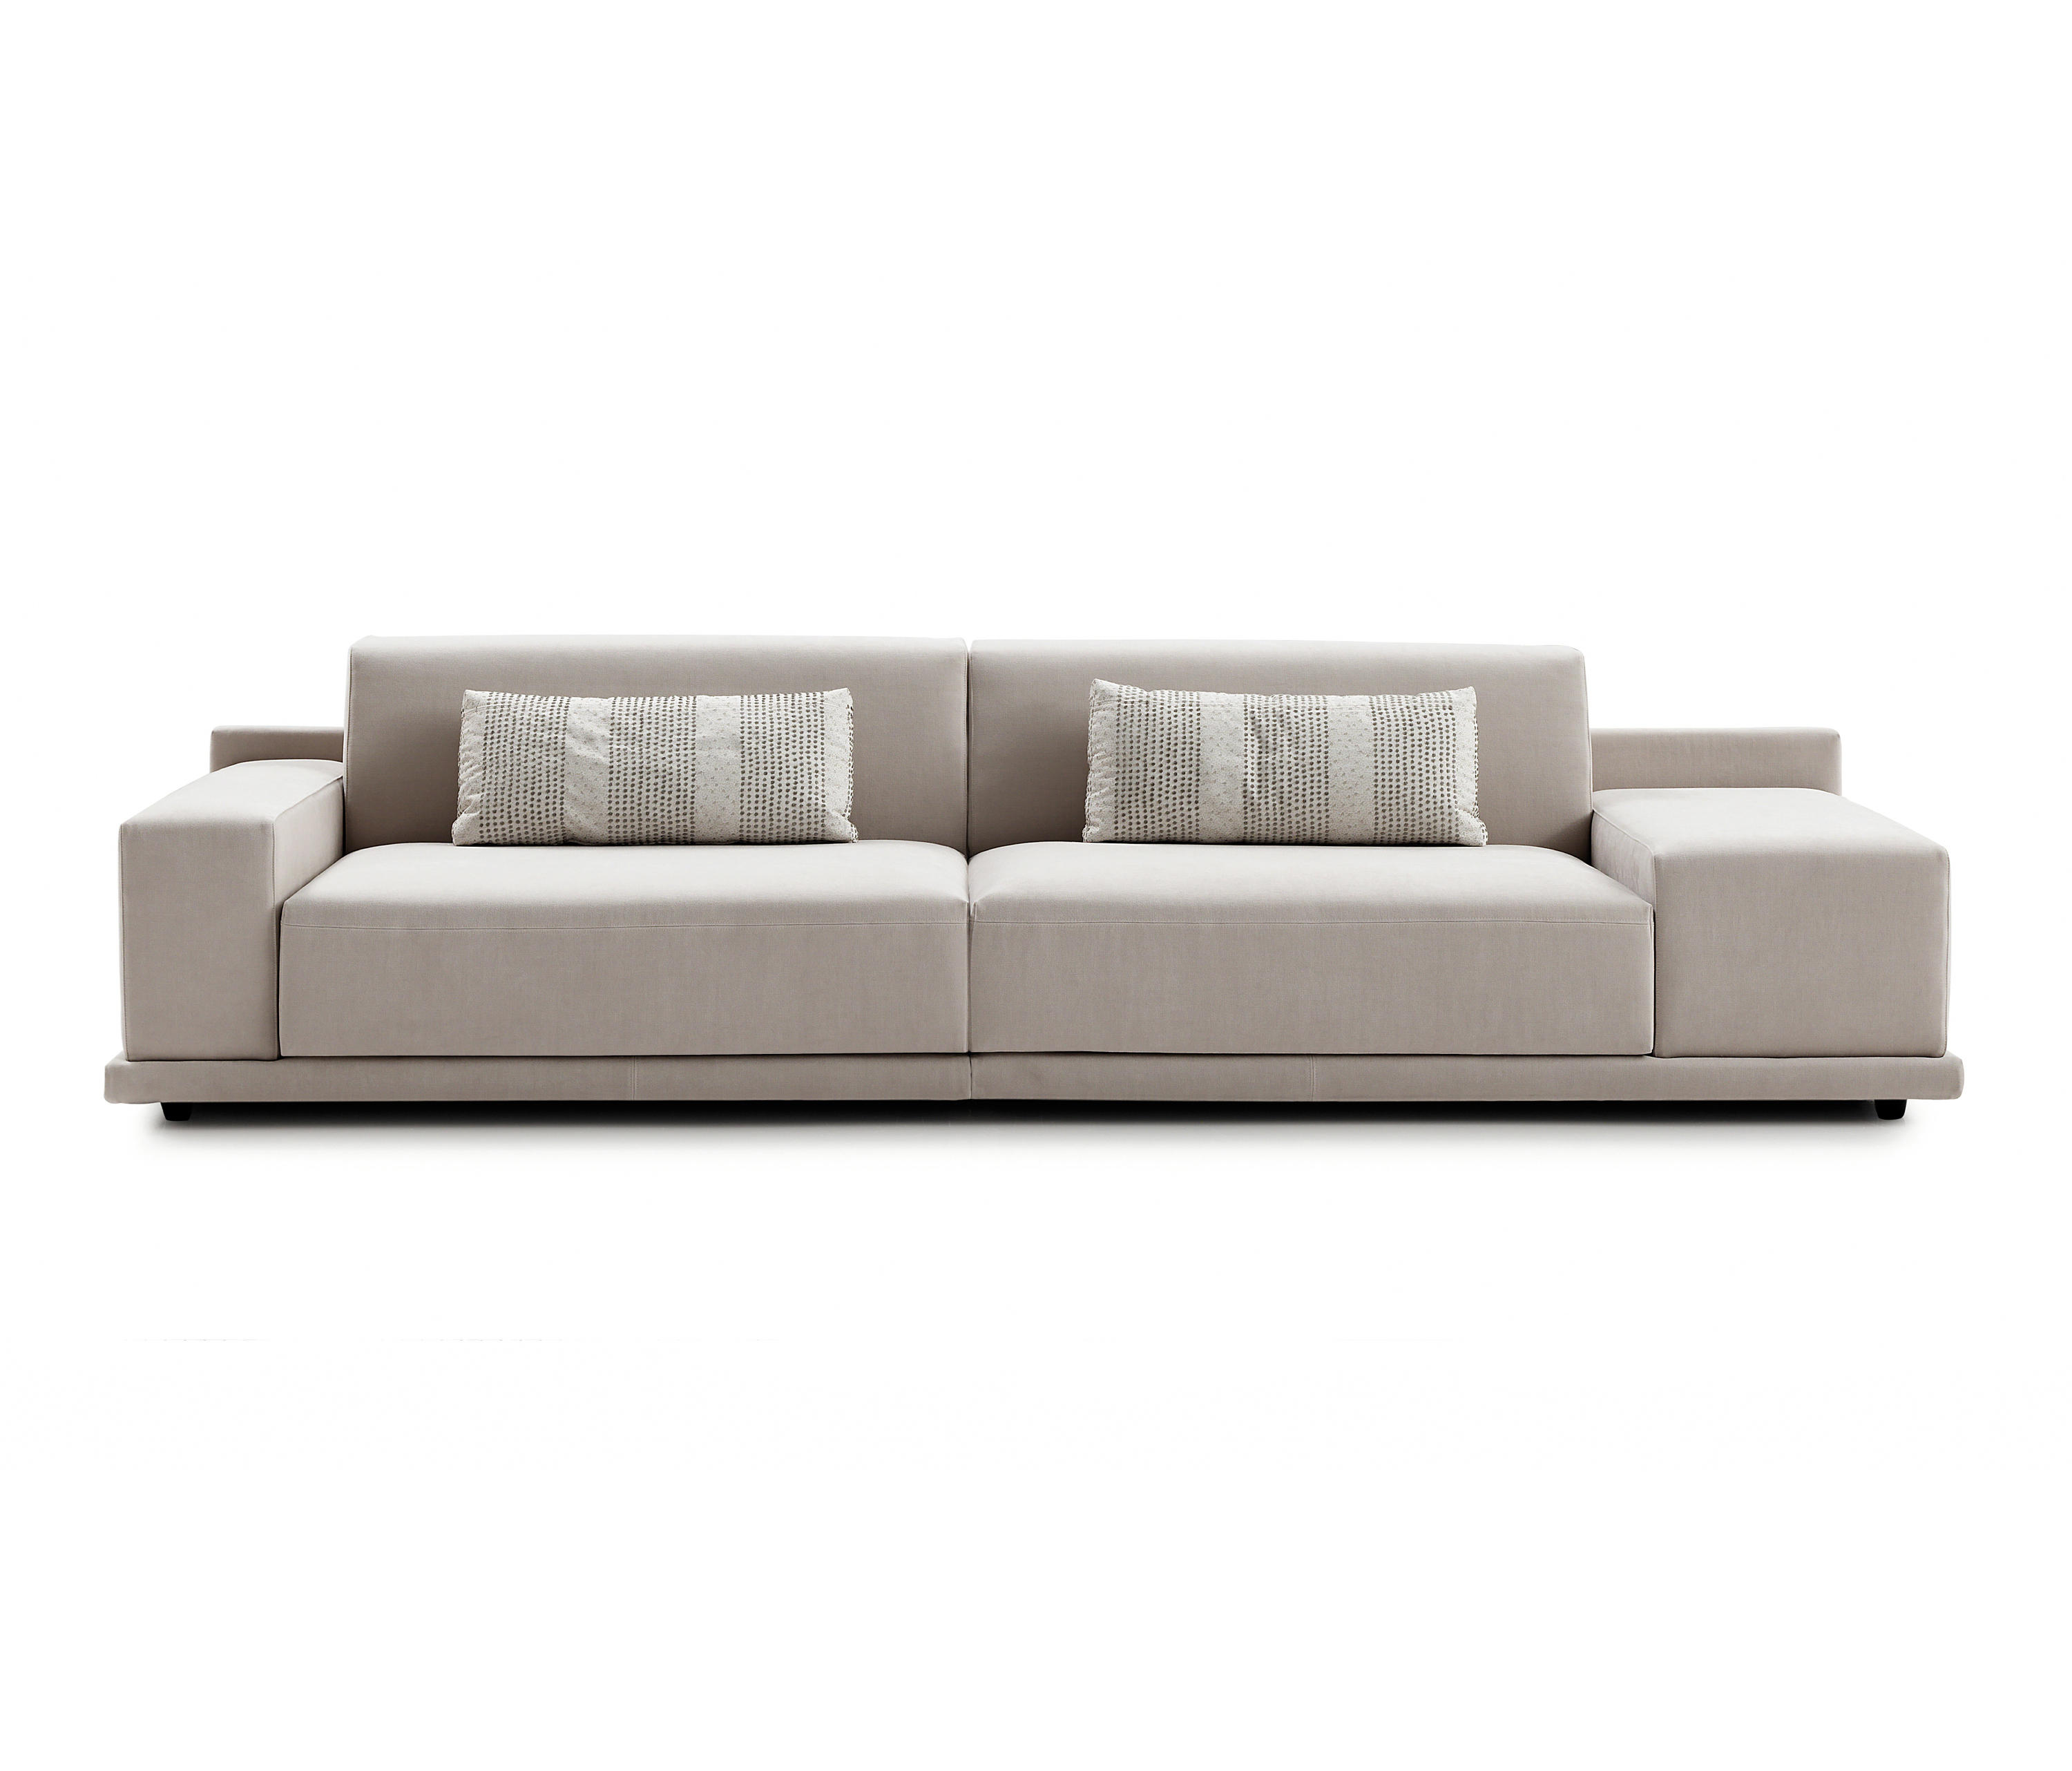 Happen lounge sofas from sancal architonic - Sofas sancal ...